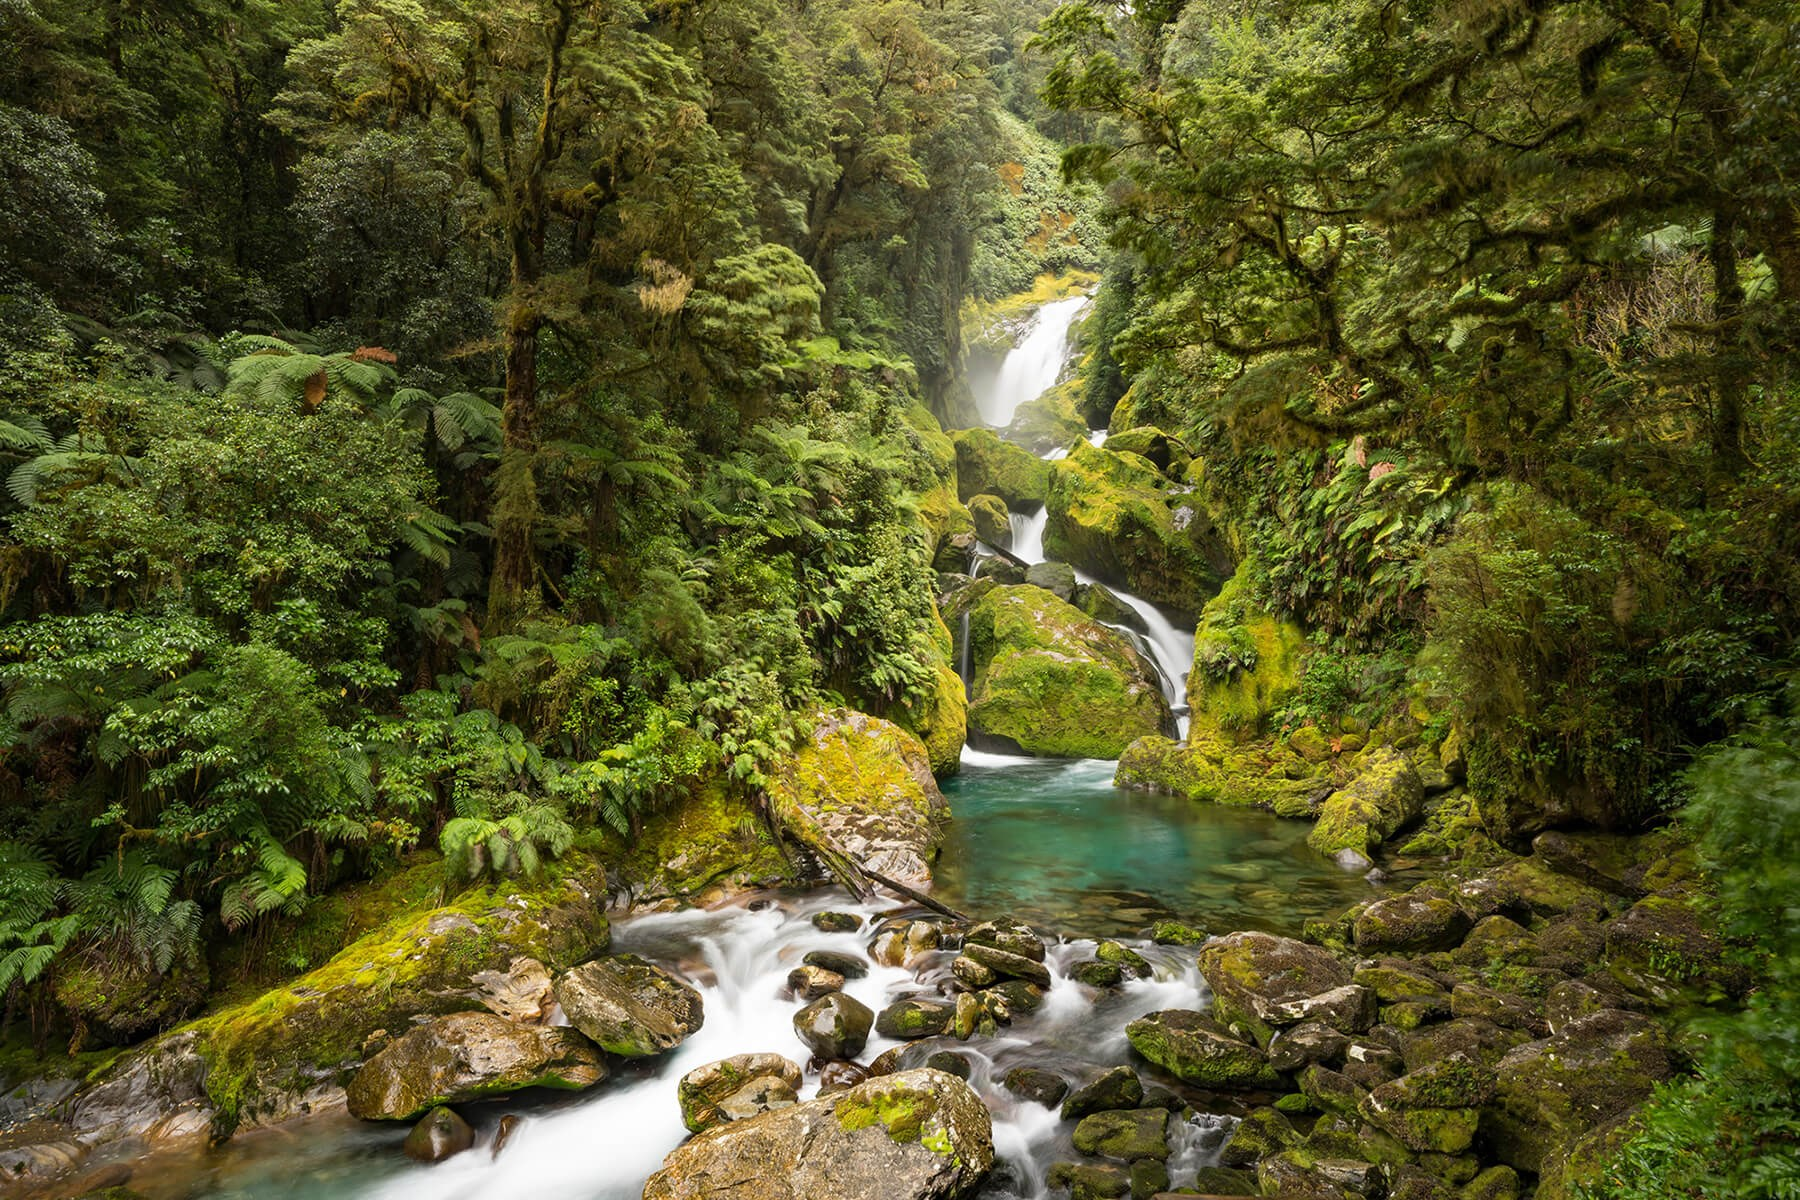 Mackay Falls on the Milford Track guided walk